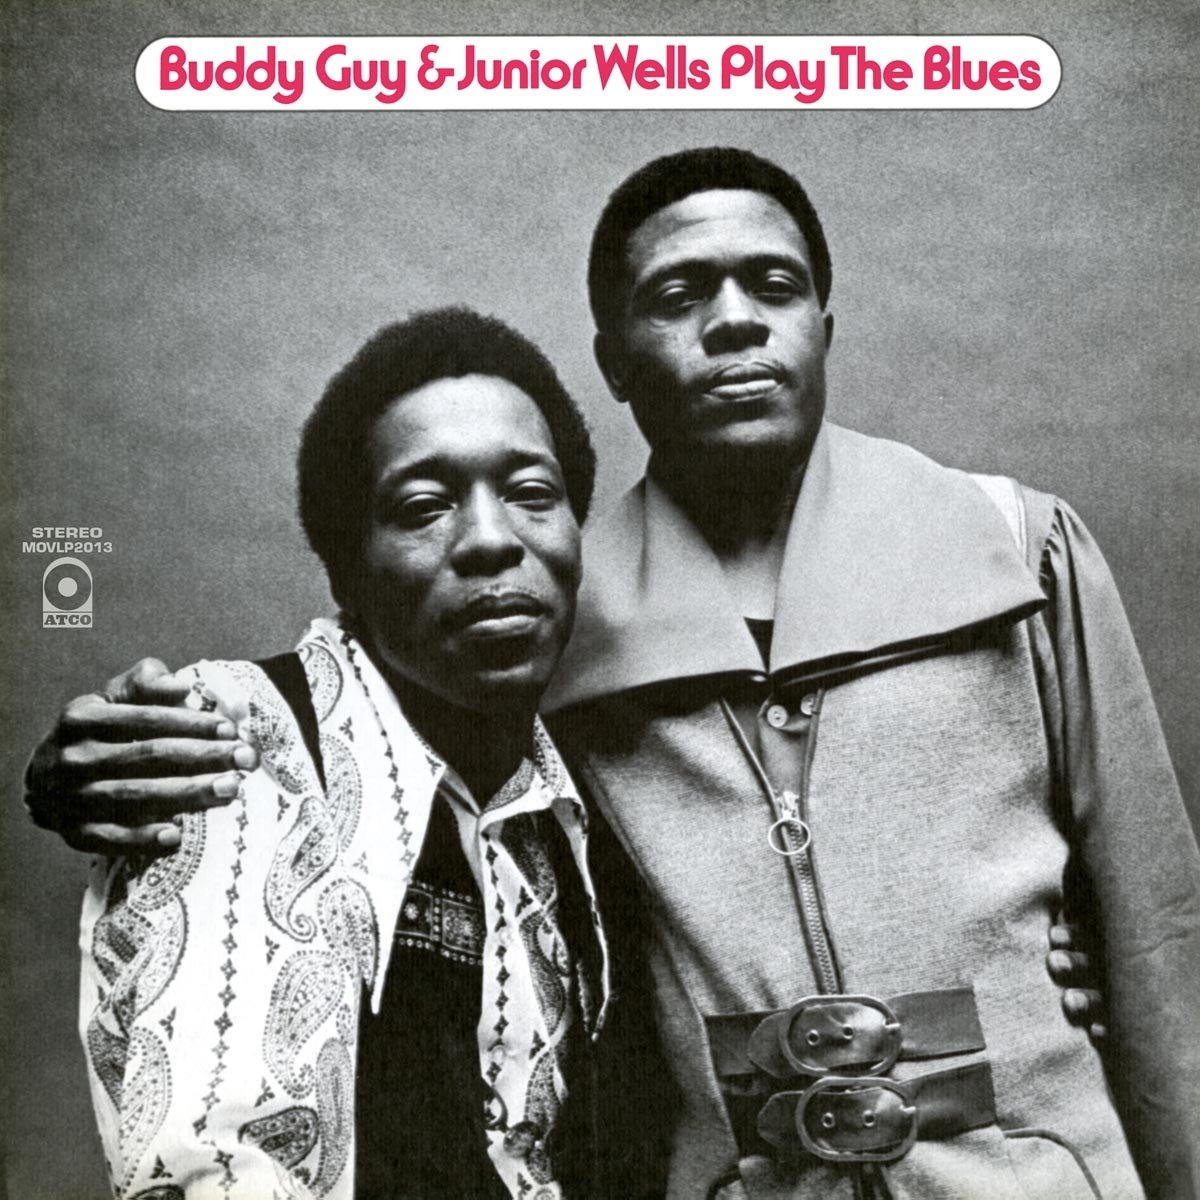 BUDDY & WELLS, JUNIIOR GUY - Play The Blues (Holland - Import)